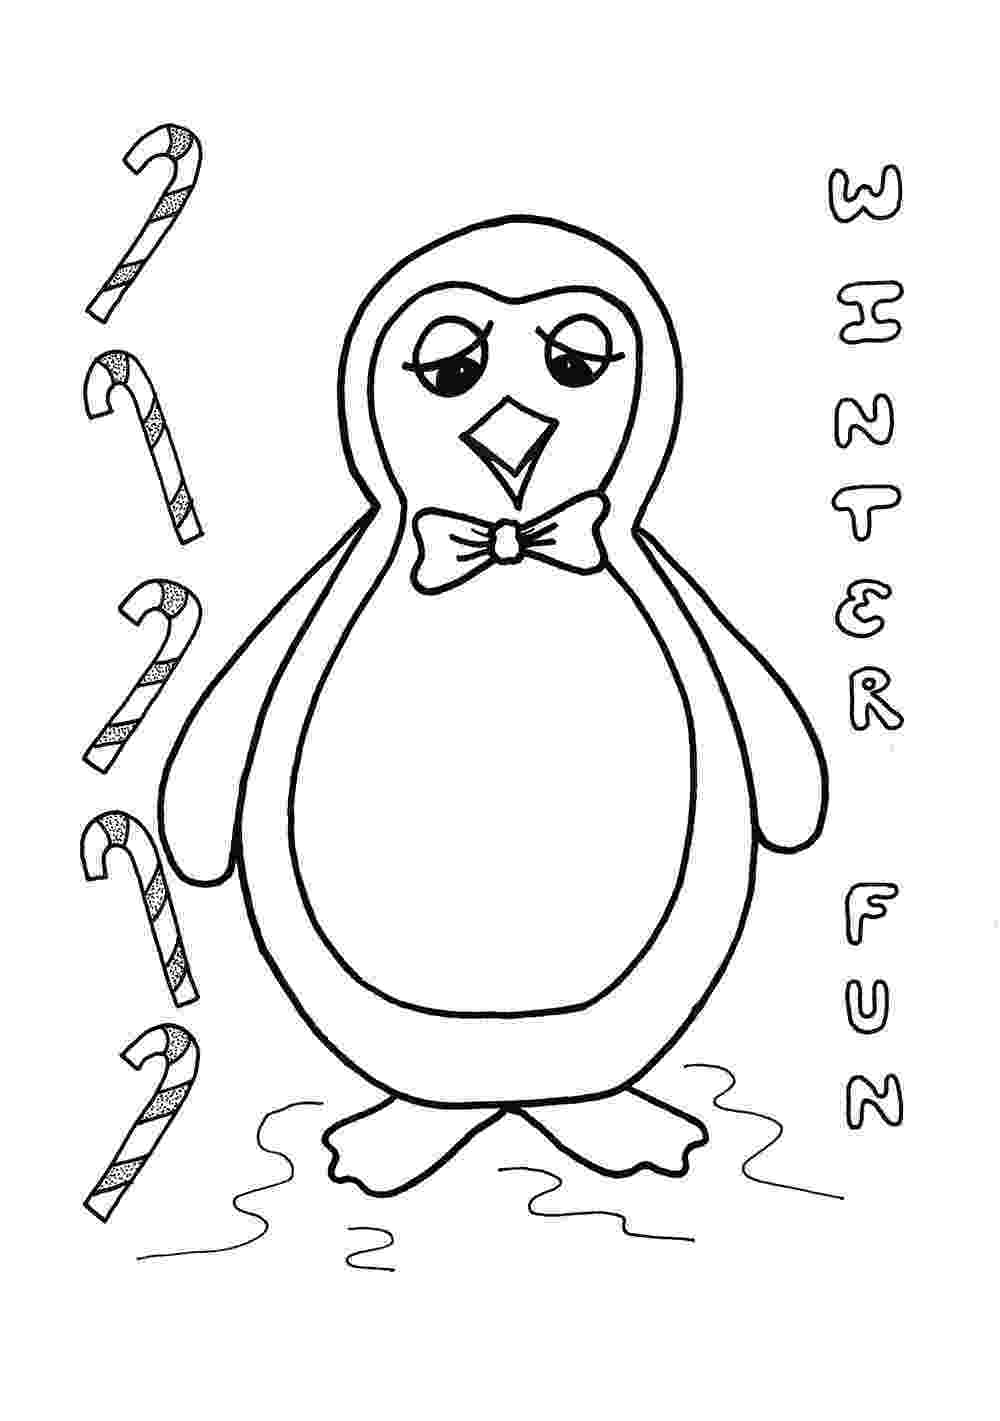 penguin color sheet printable penguin coloring pages for kids cool2bkids color sheet penguin